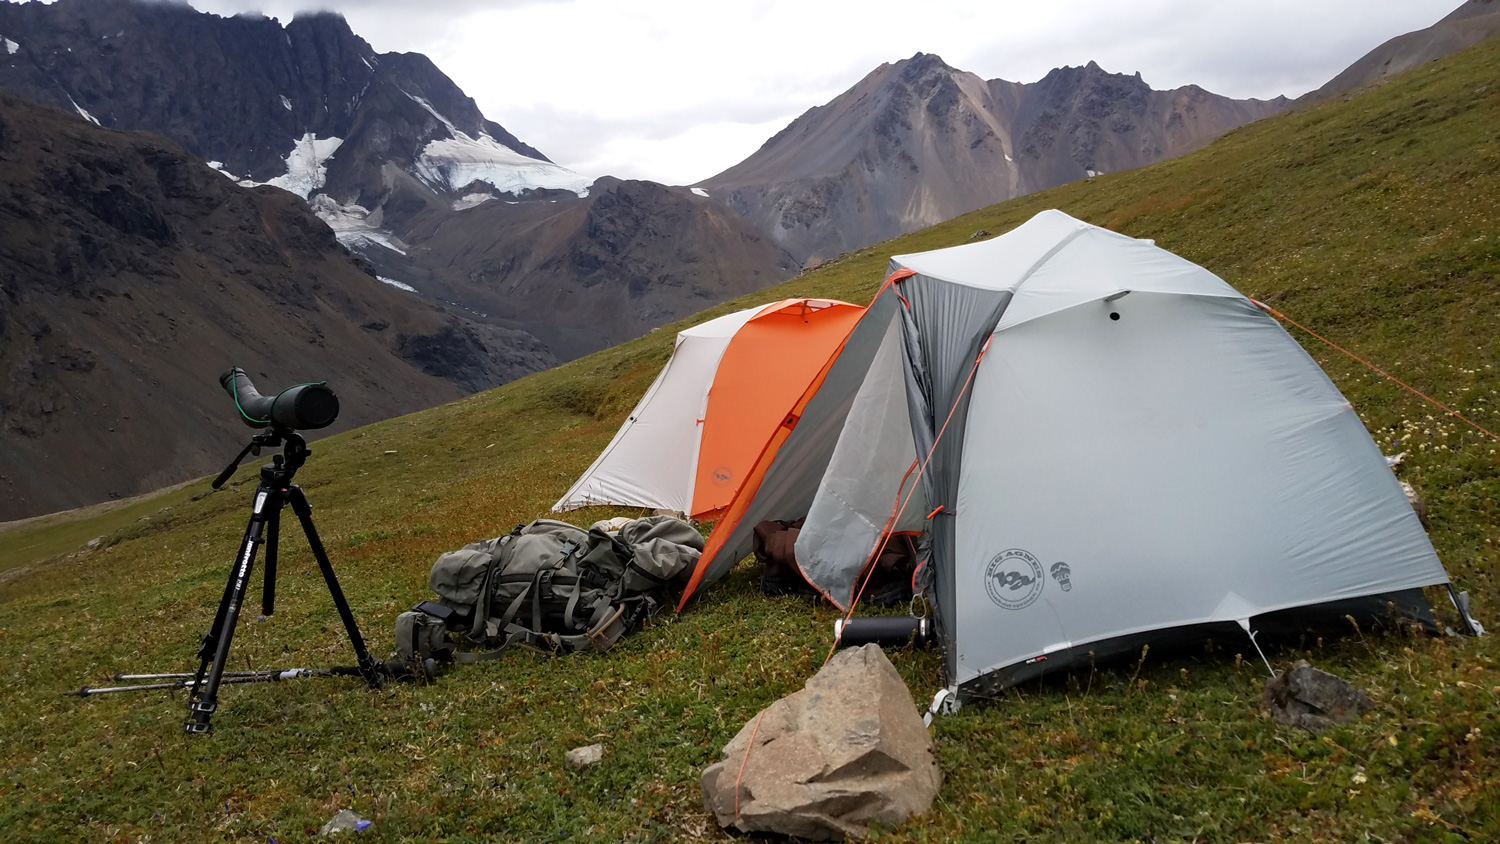 Big Agnes Tent for Lightweight Backcountry Hunting and Camping